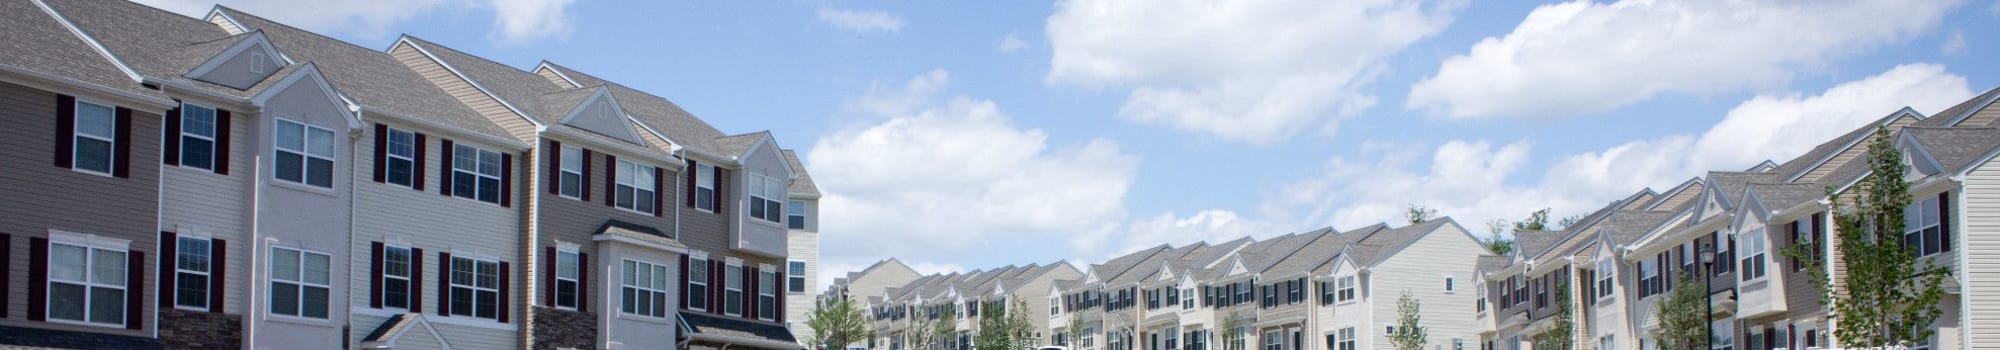 Contact Emerald Pointe Townhomes today